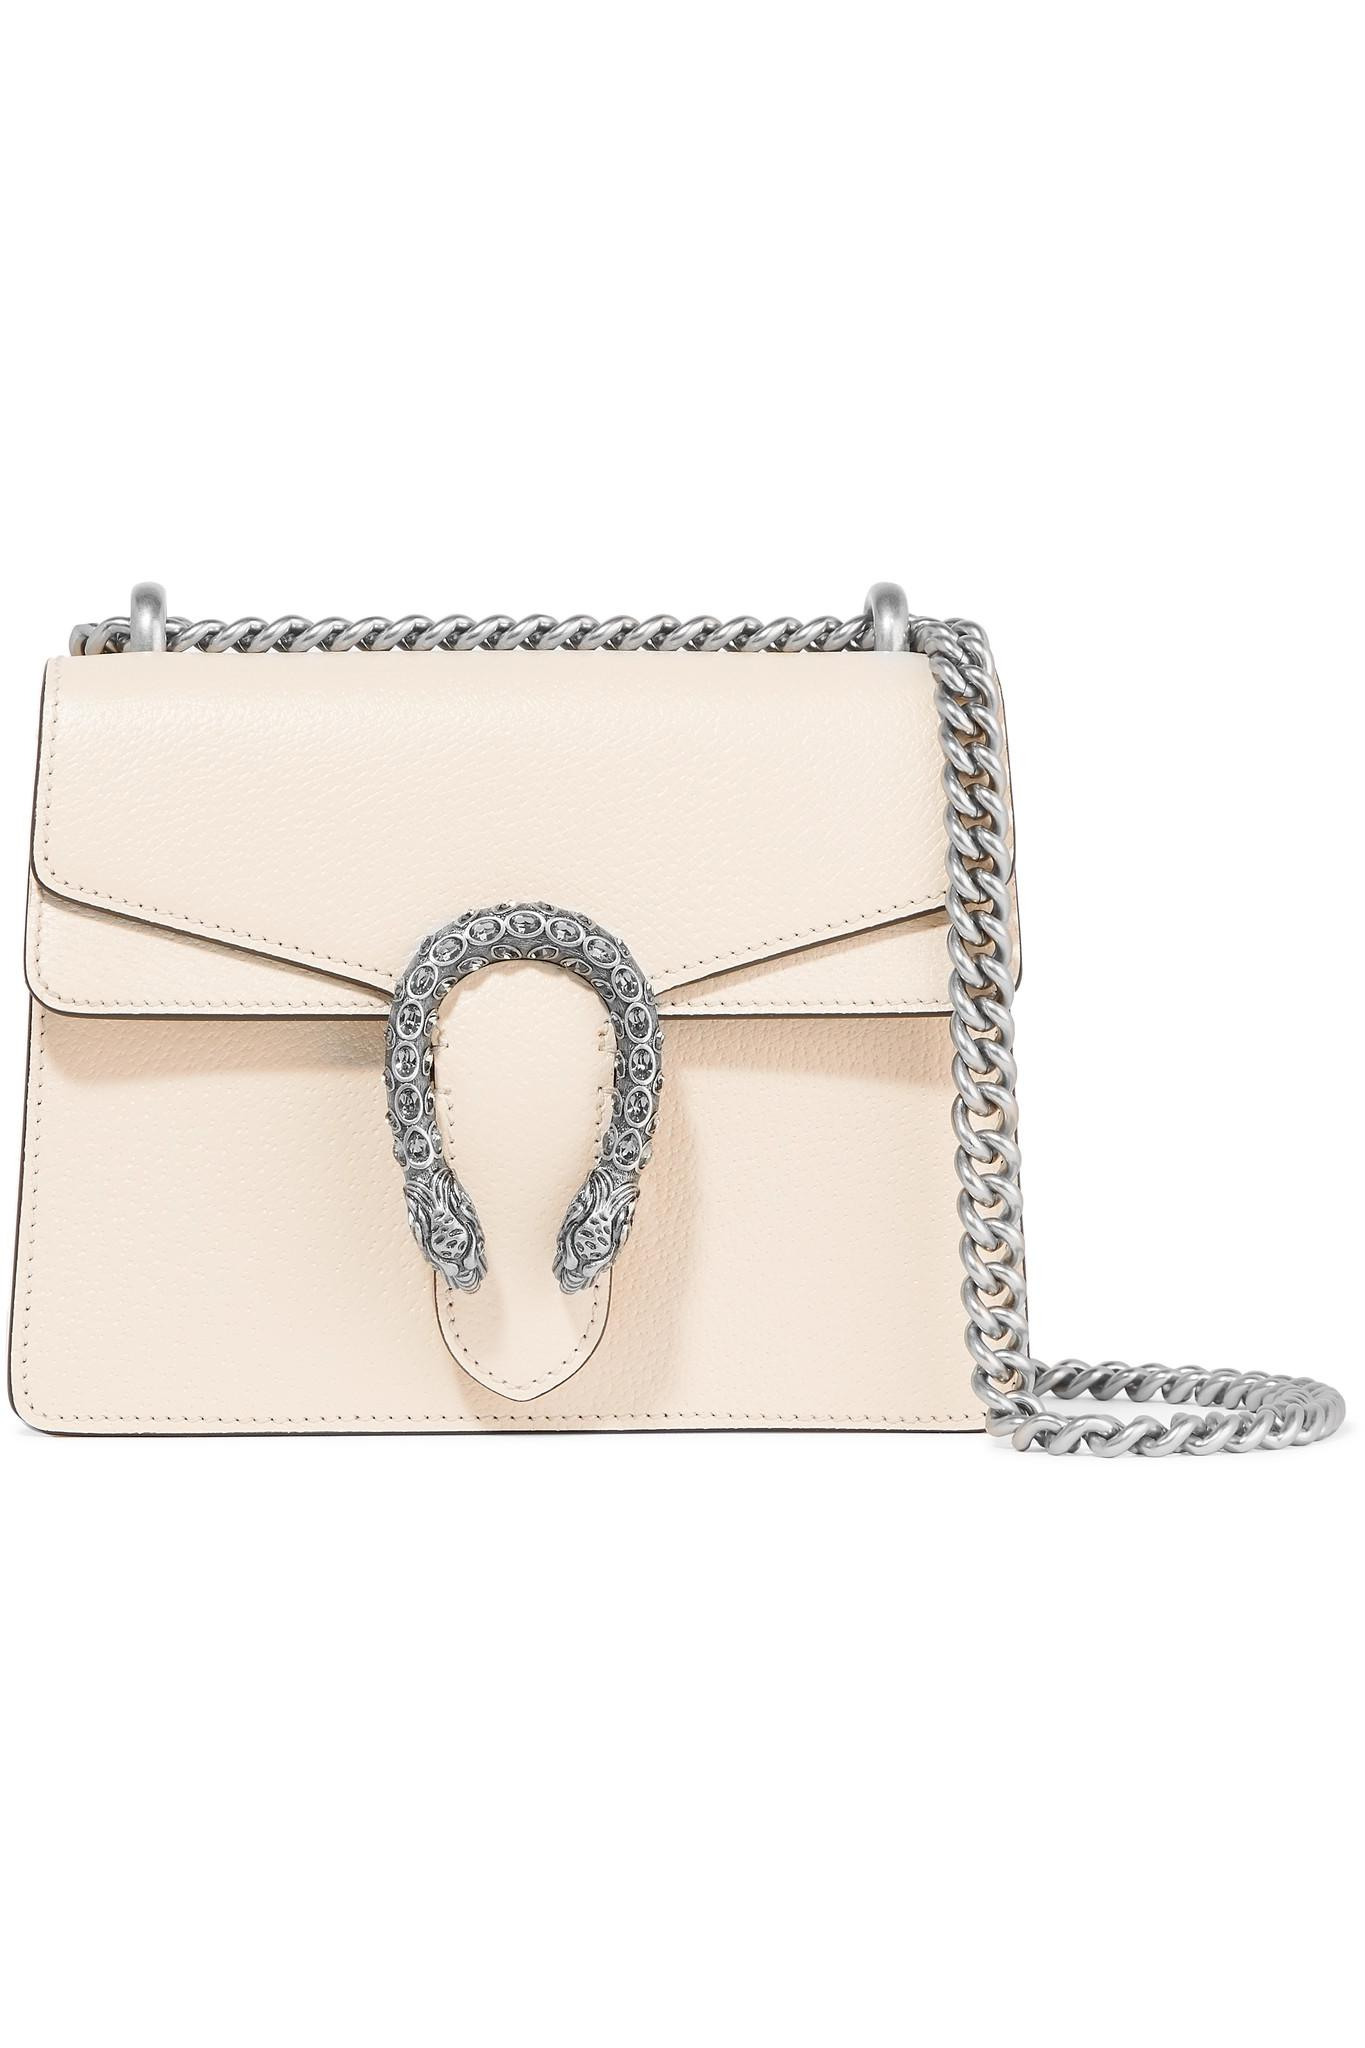 9fde22370a9 Gucci Dionysus Mini Textured-leather Shoulder Bag in White - Lyst